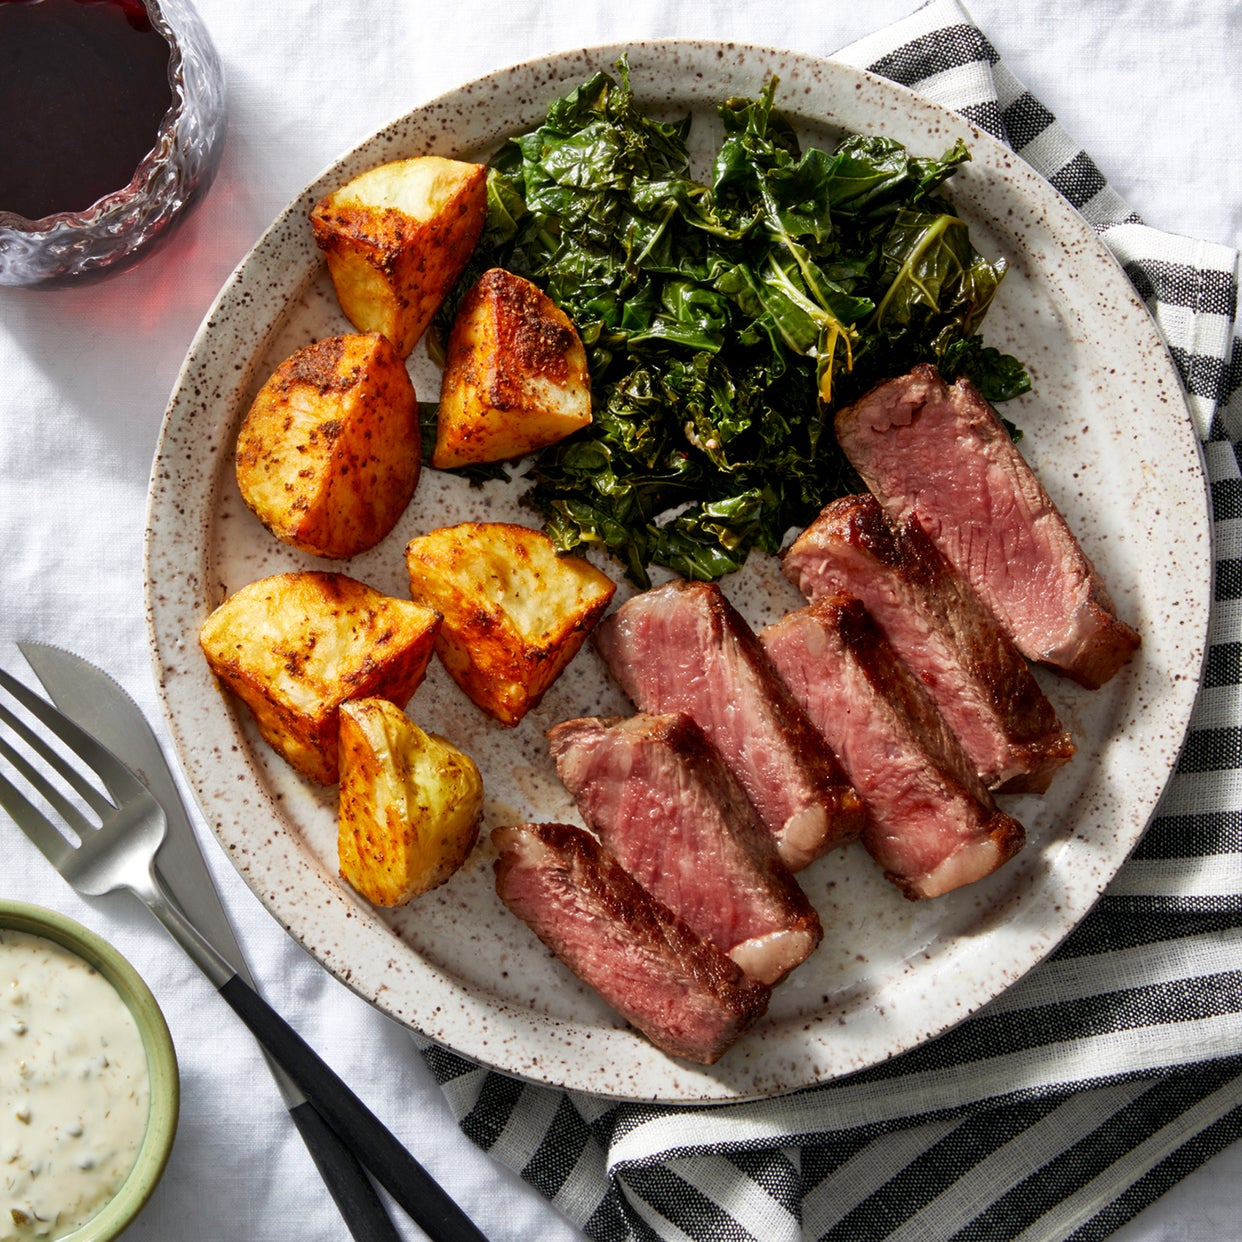 Seared Steak with Roasted Potatoes & Caper Aioli